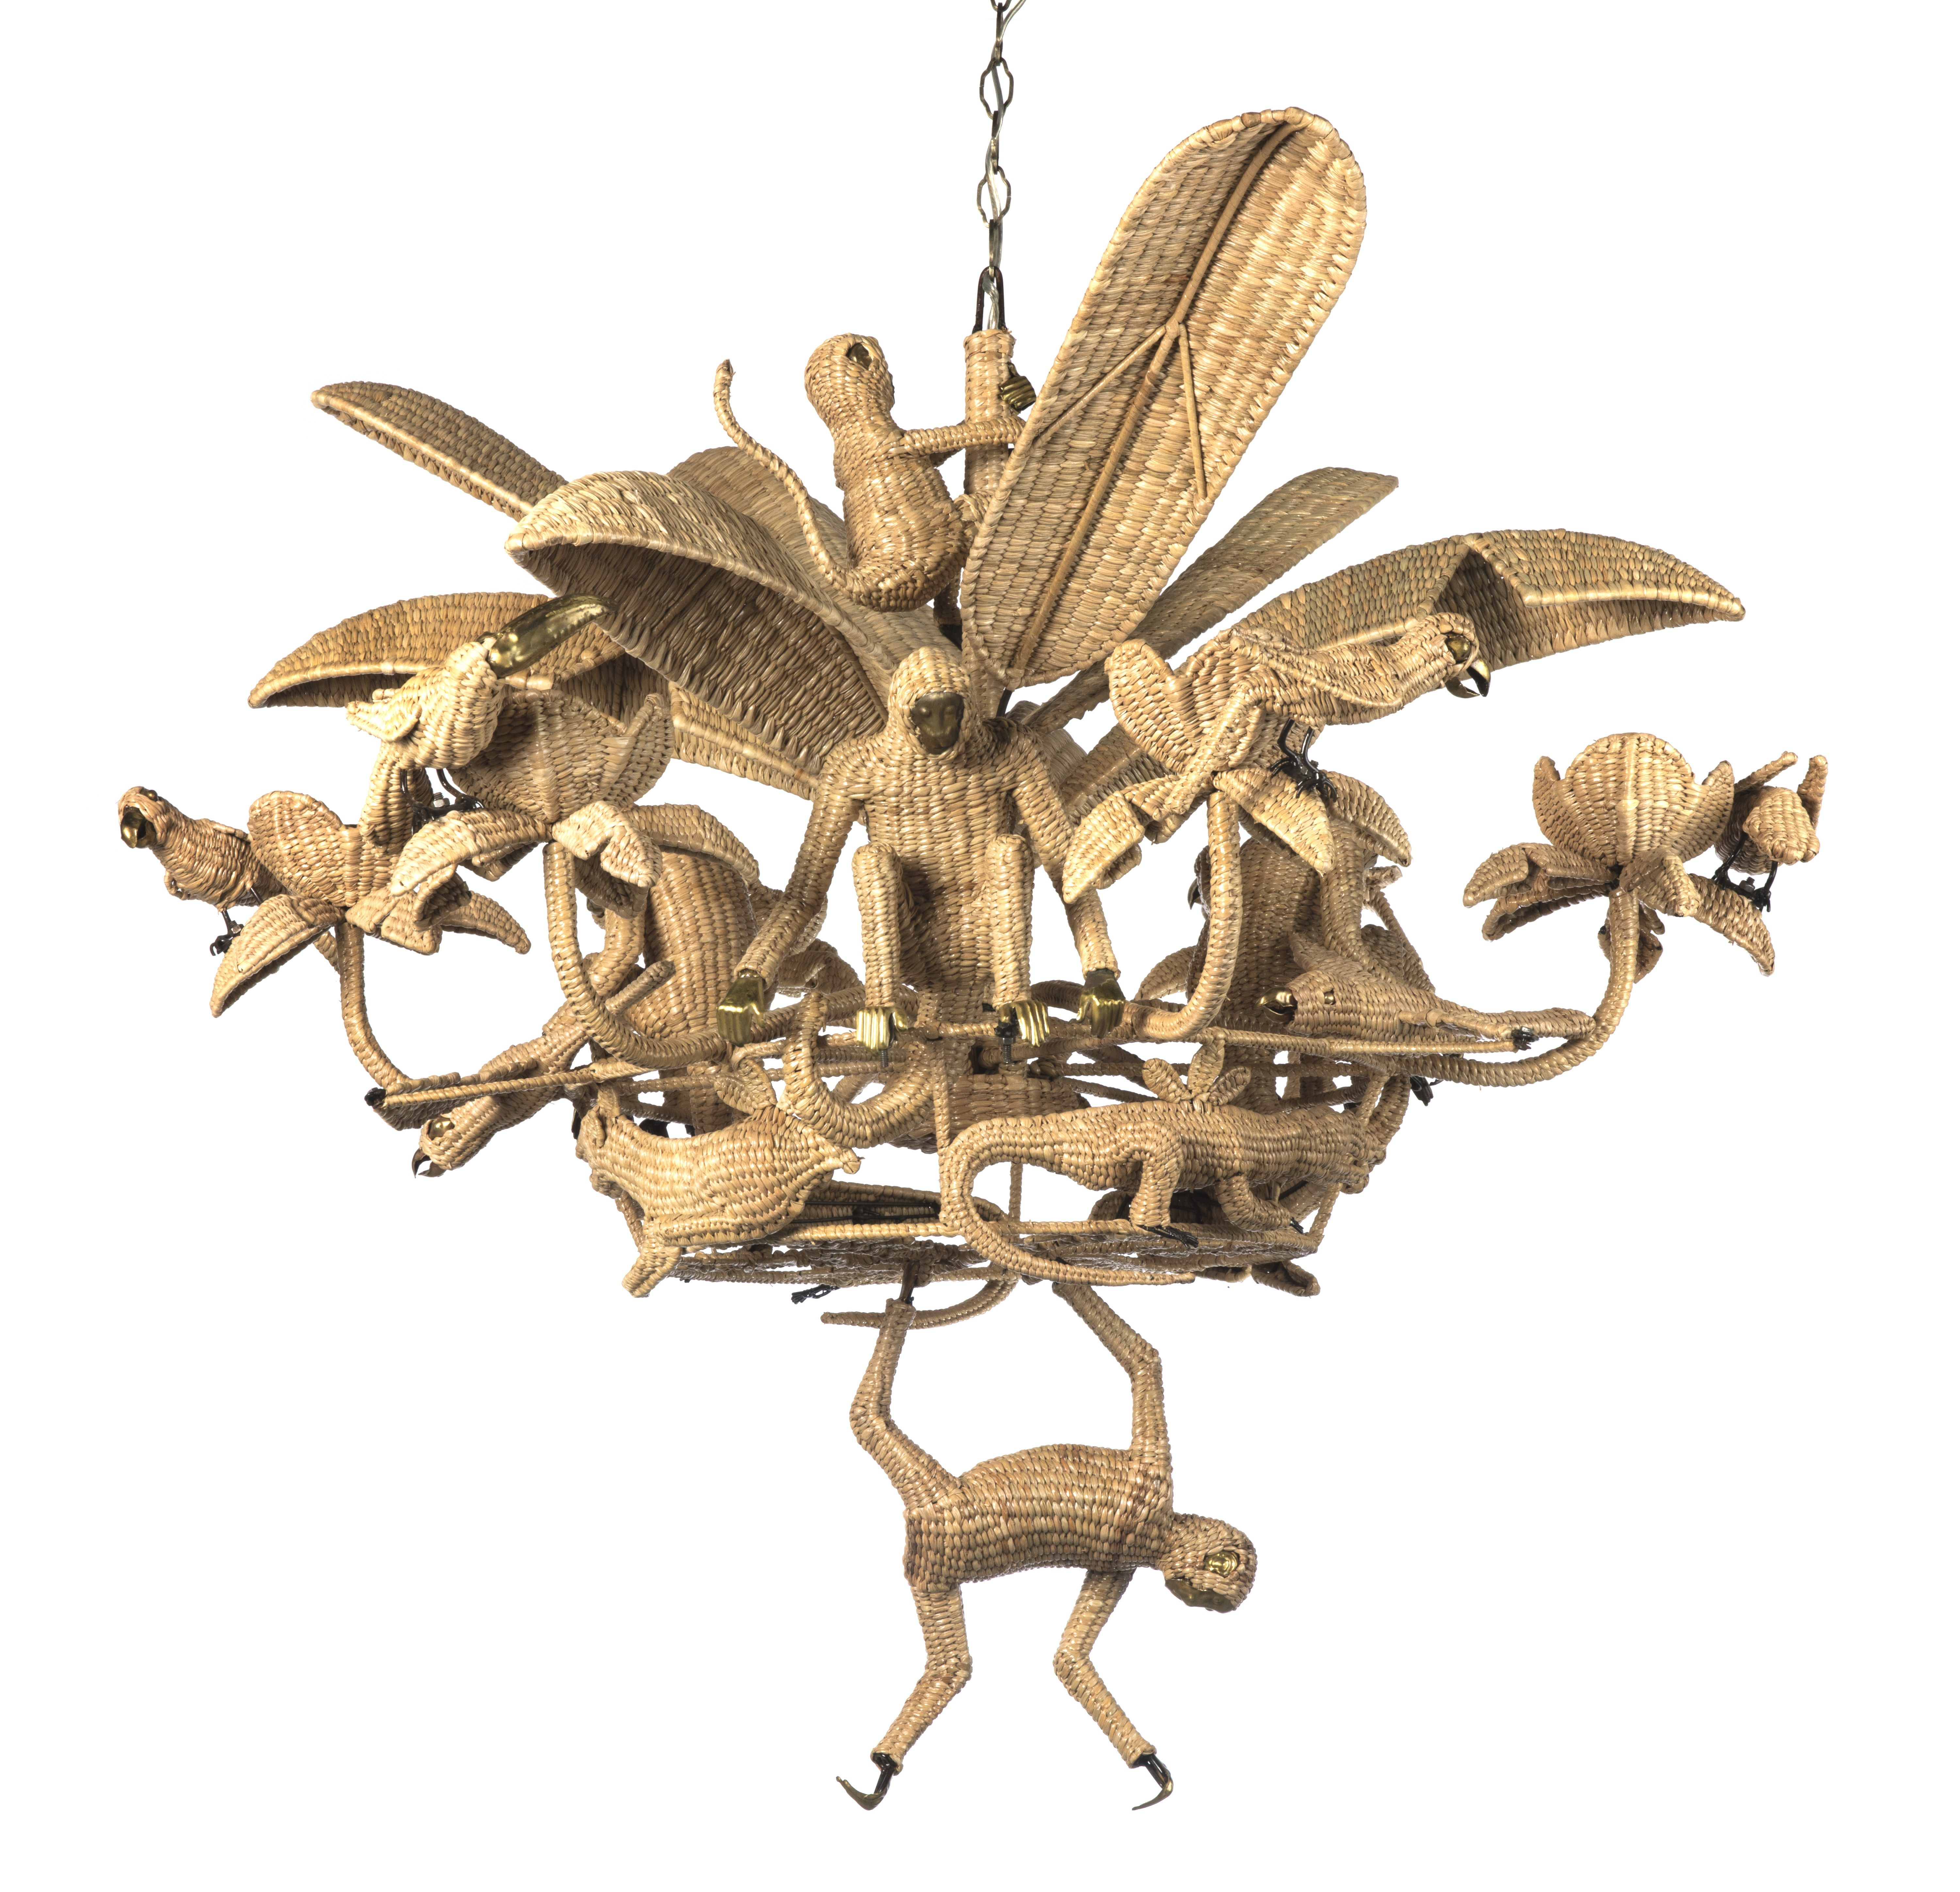 What our market department is coveting now rattan parisians and chandelier from casa lopez this fantastical handmade rattan chandelier from pierre sauvages parisian boutique features birds aloadofball Image collections